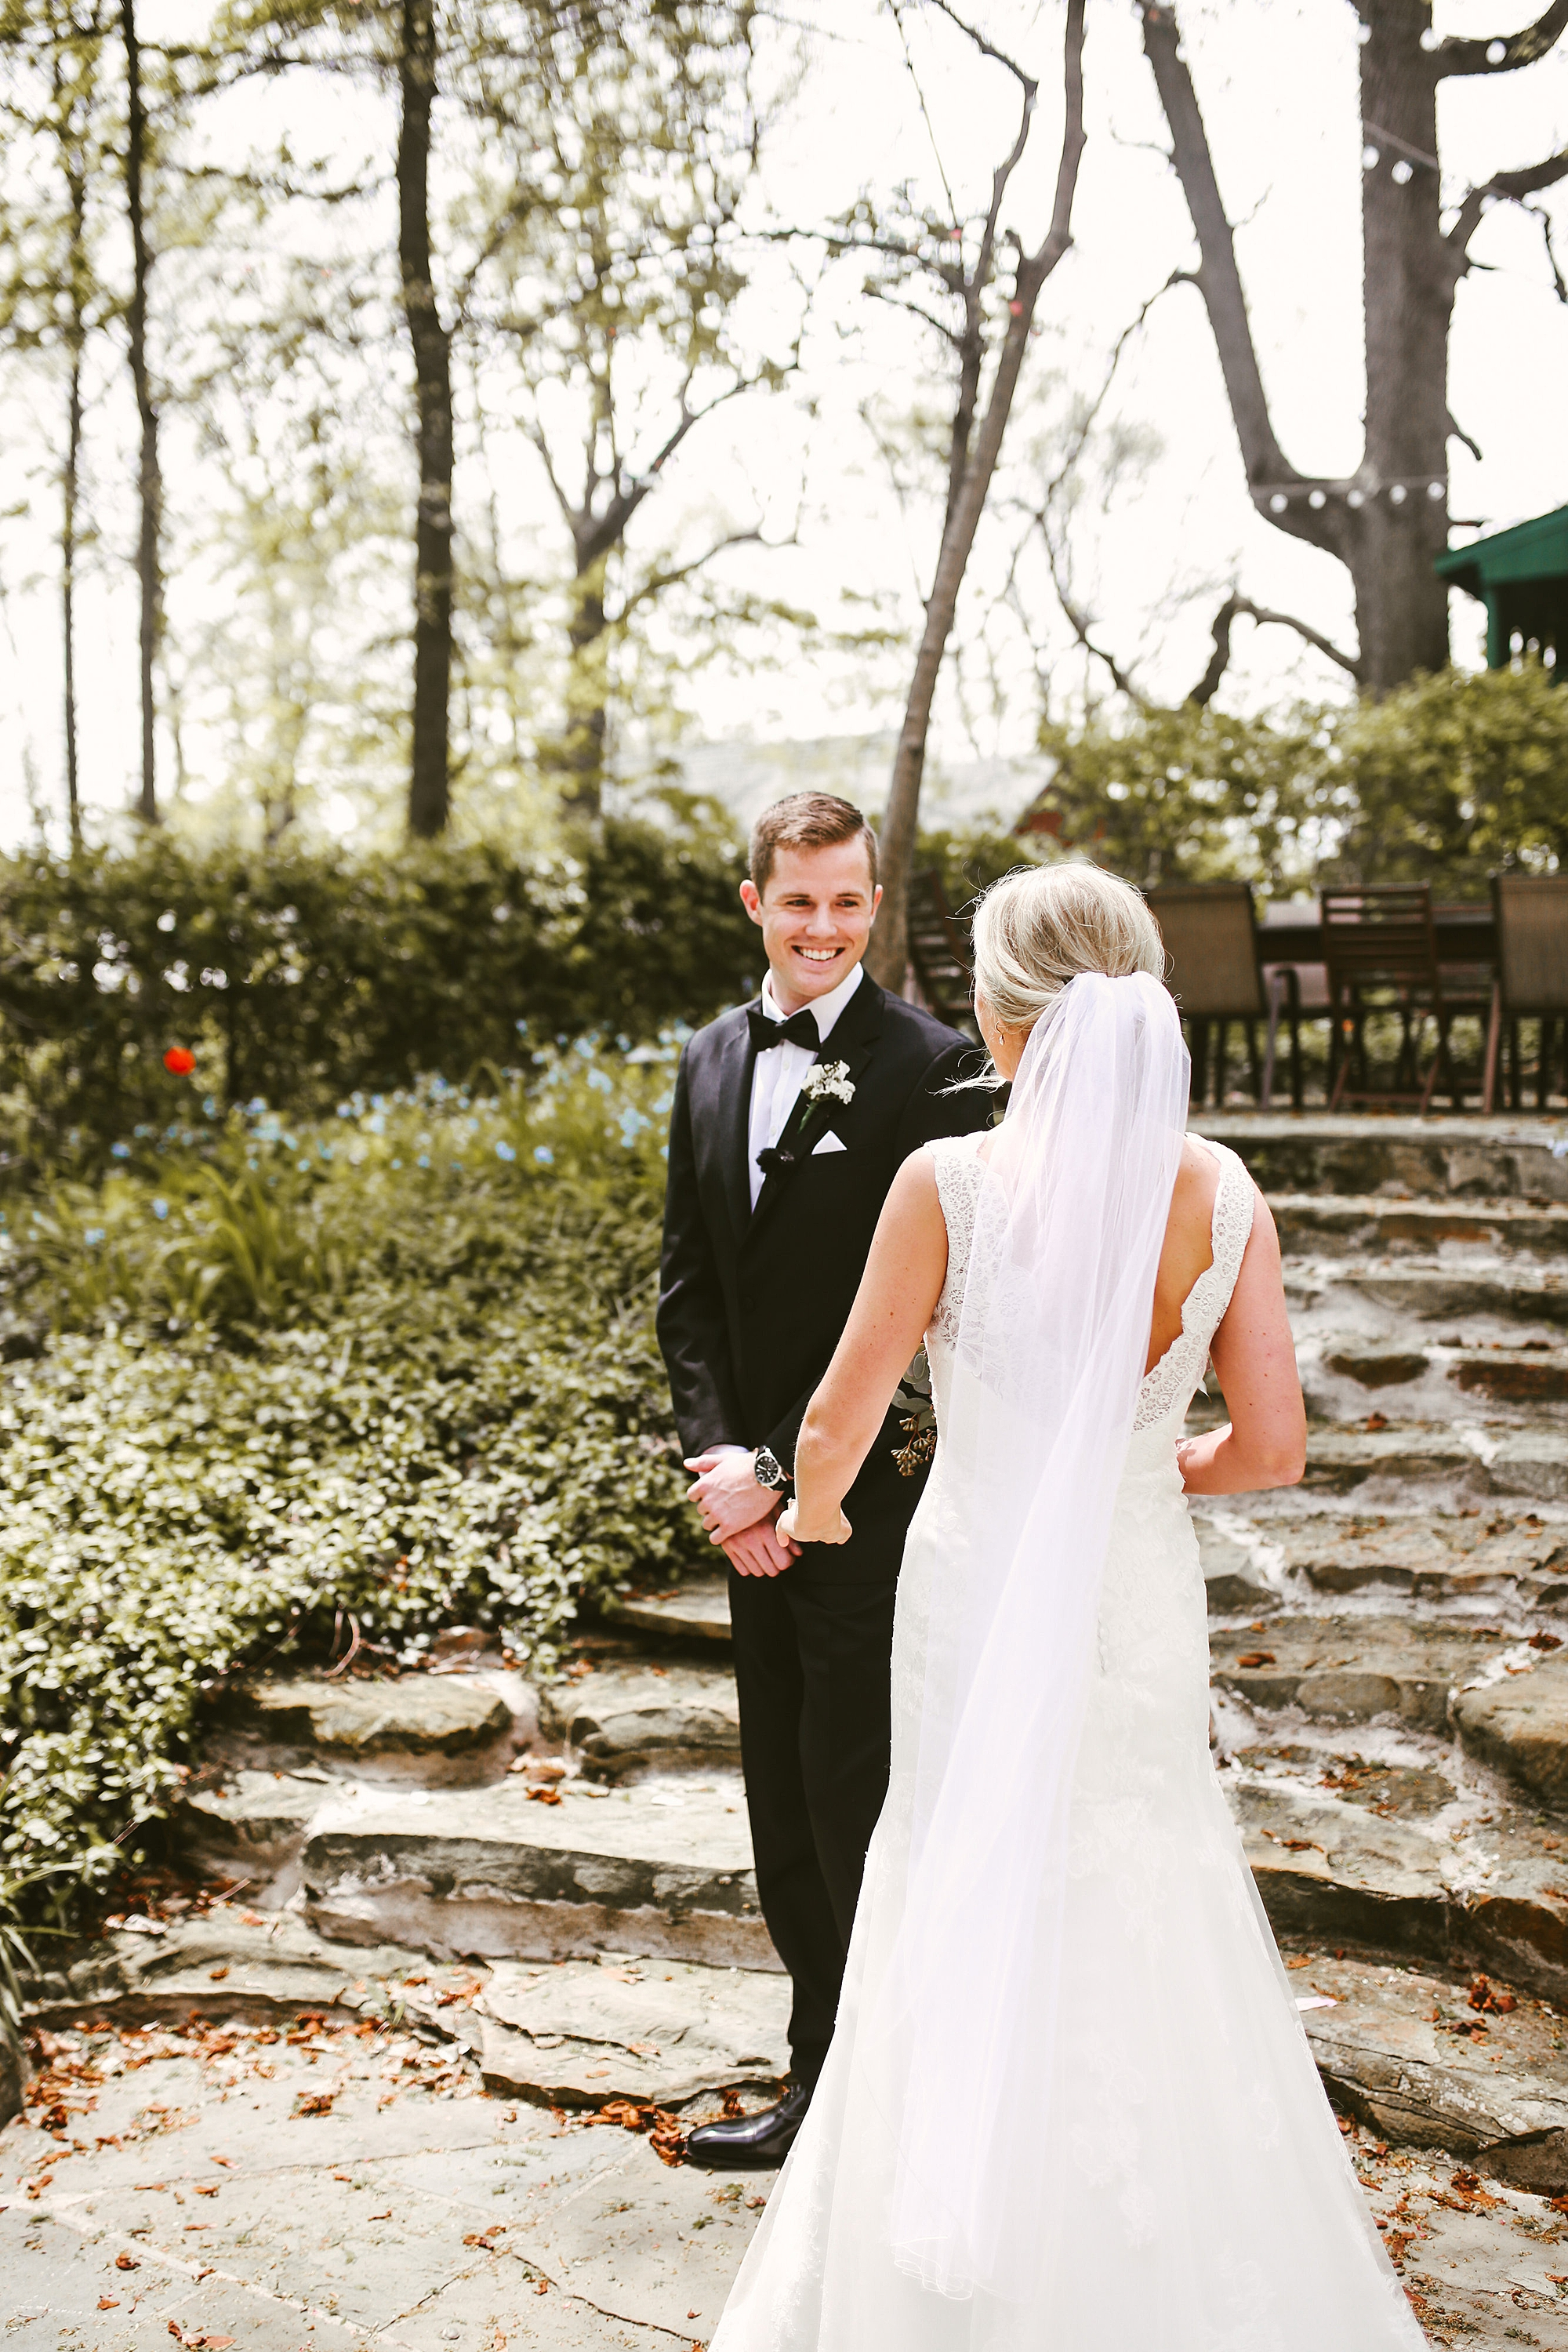 Huff Photography - Maggie and Greg_0025.jpg